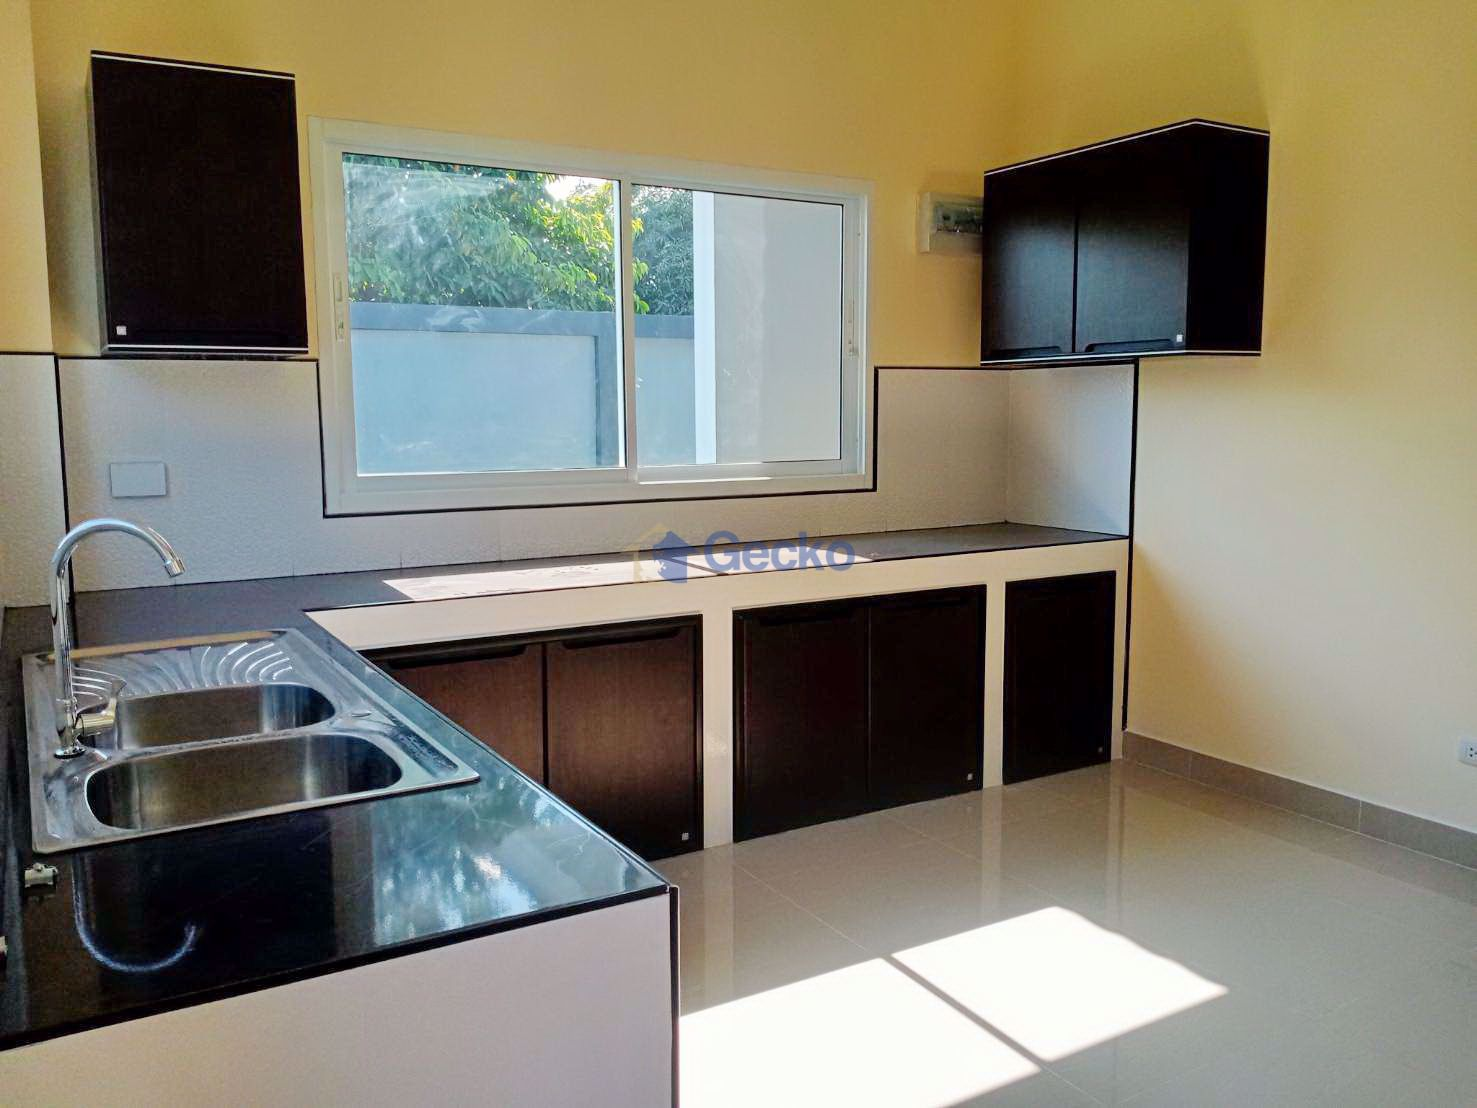 Picture of 3 Bedrooms bed in House in East Pattaya H009293